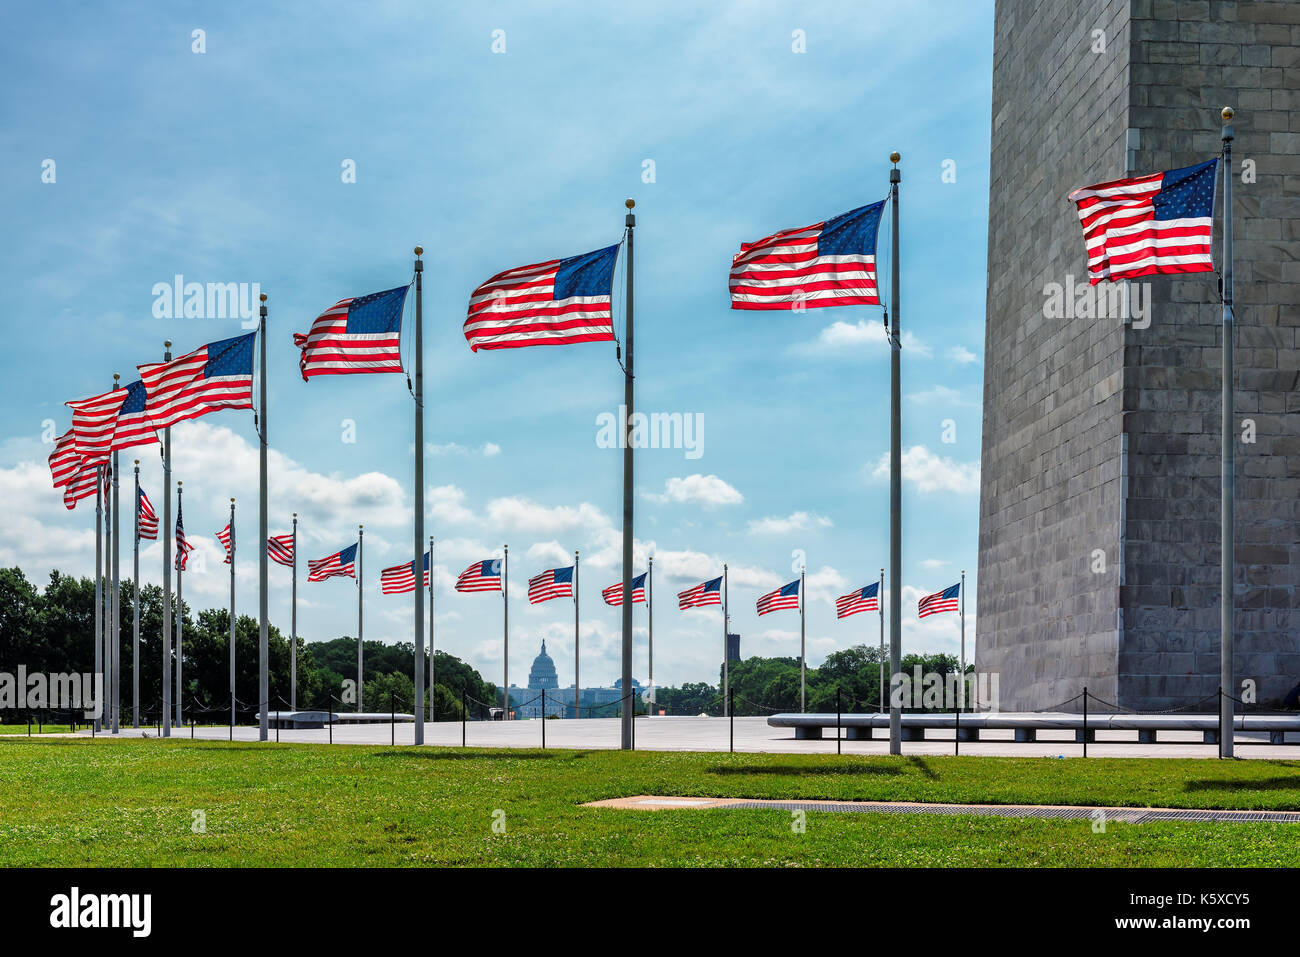 American flags near Washington Monument and Capitol building in background, Washington DC, United States. - Stock Image